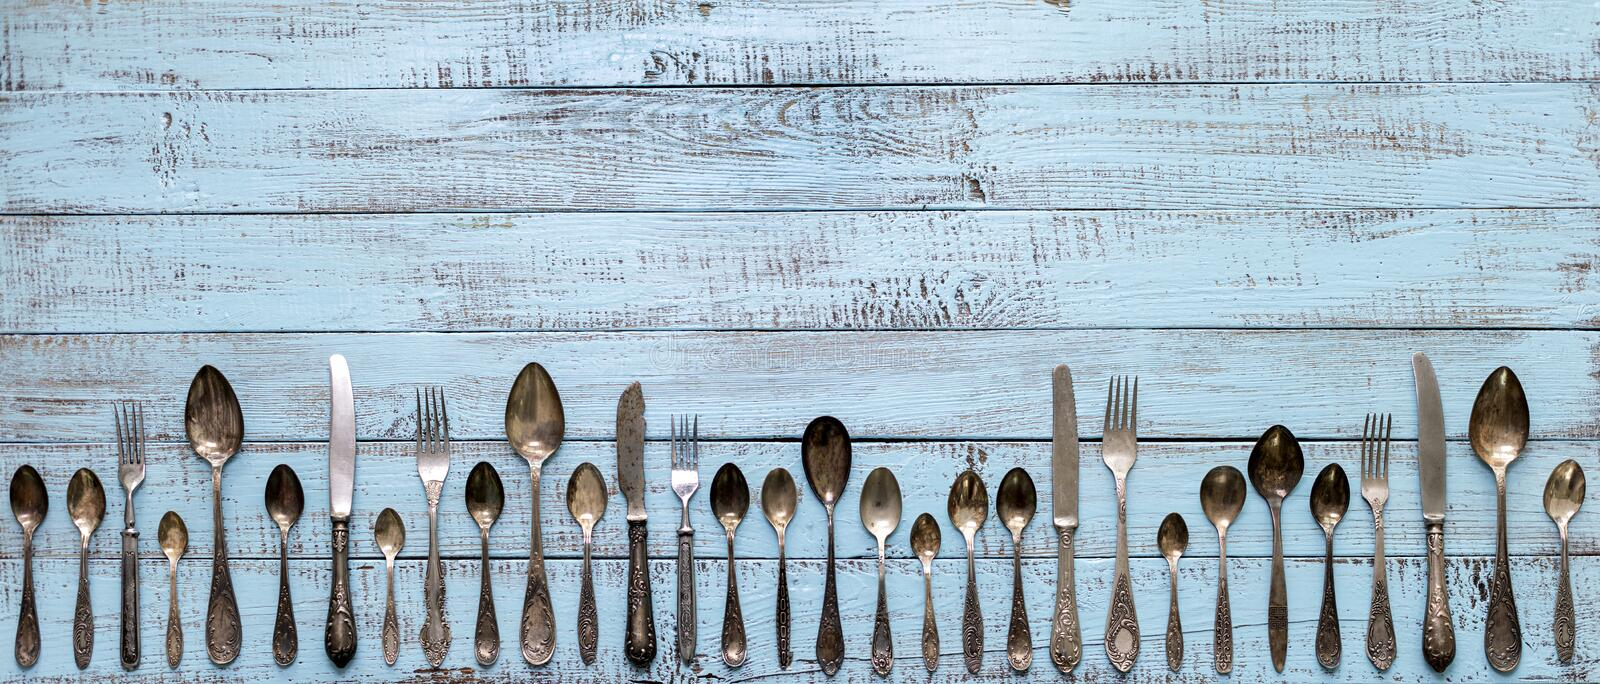 Merry Christmas! Vintage cutlery in santa claus hats on old wooden background. Background with copy space royalty free stock photography